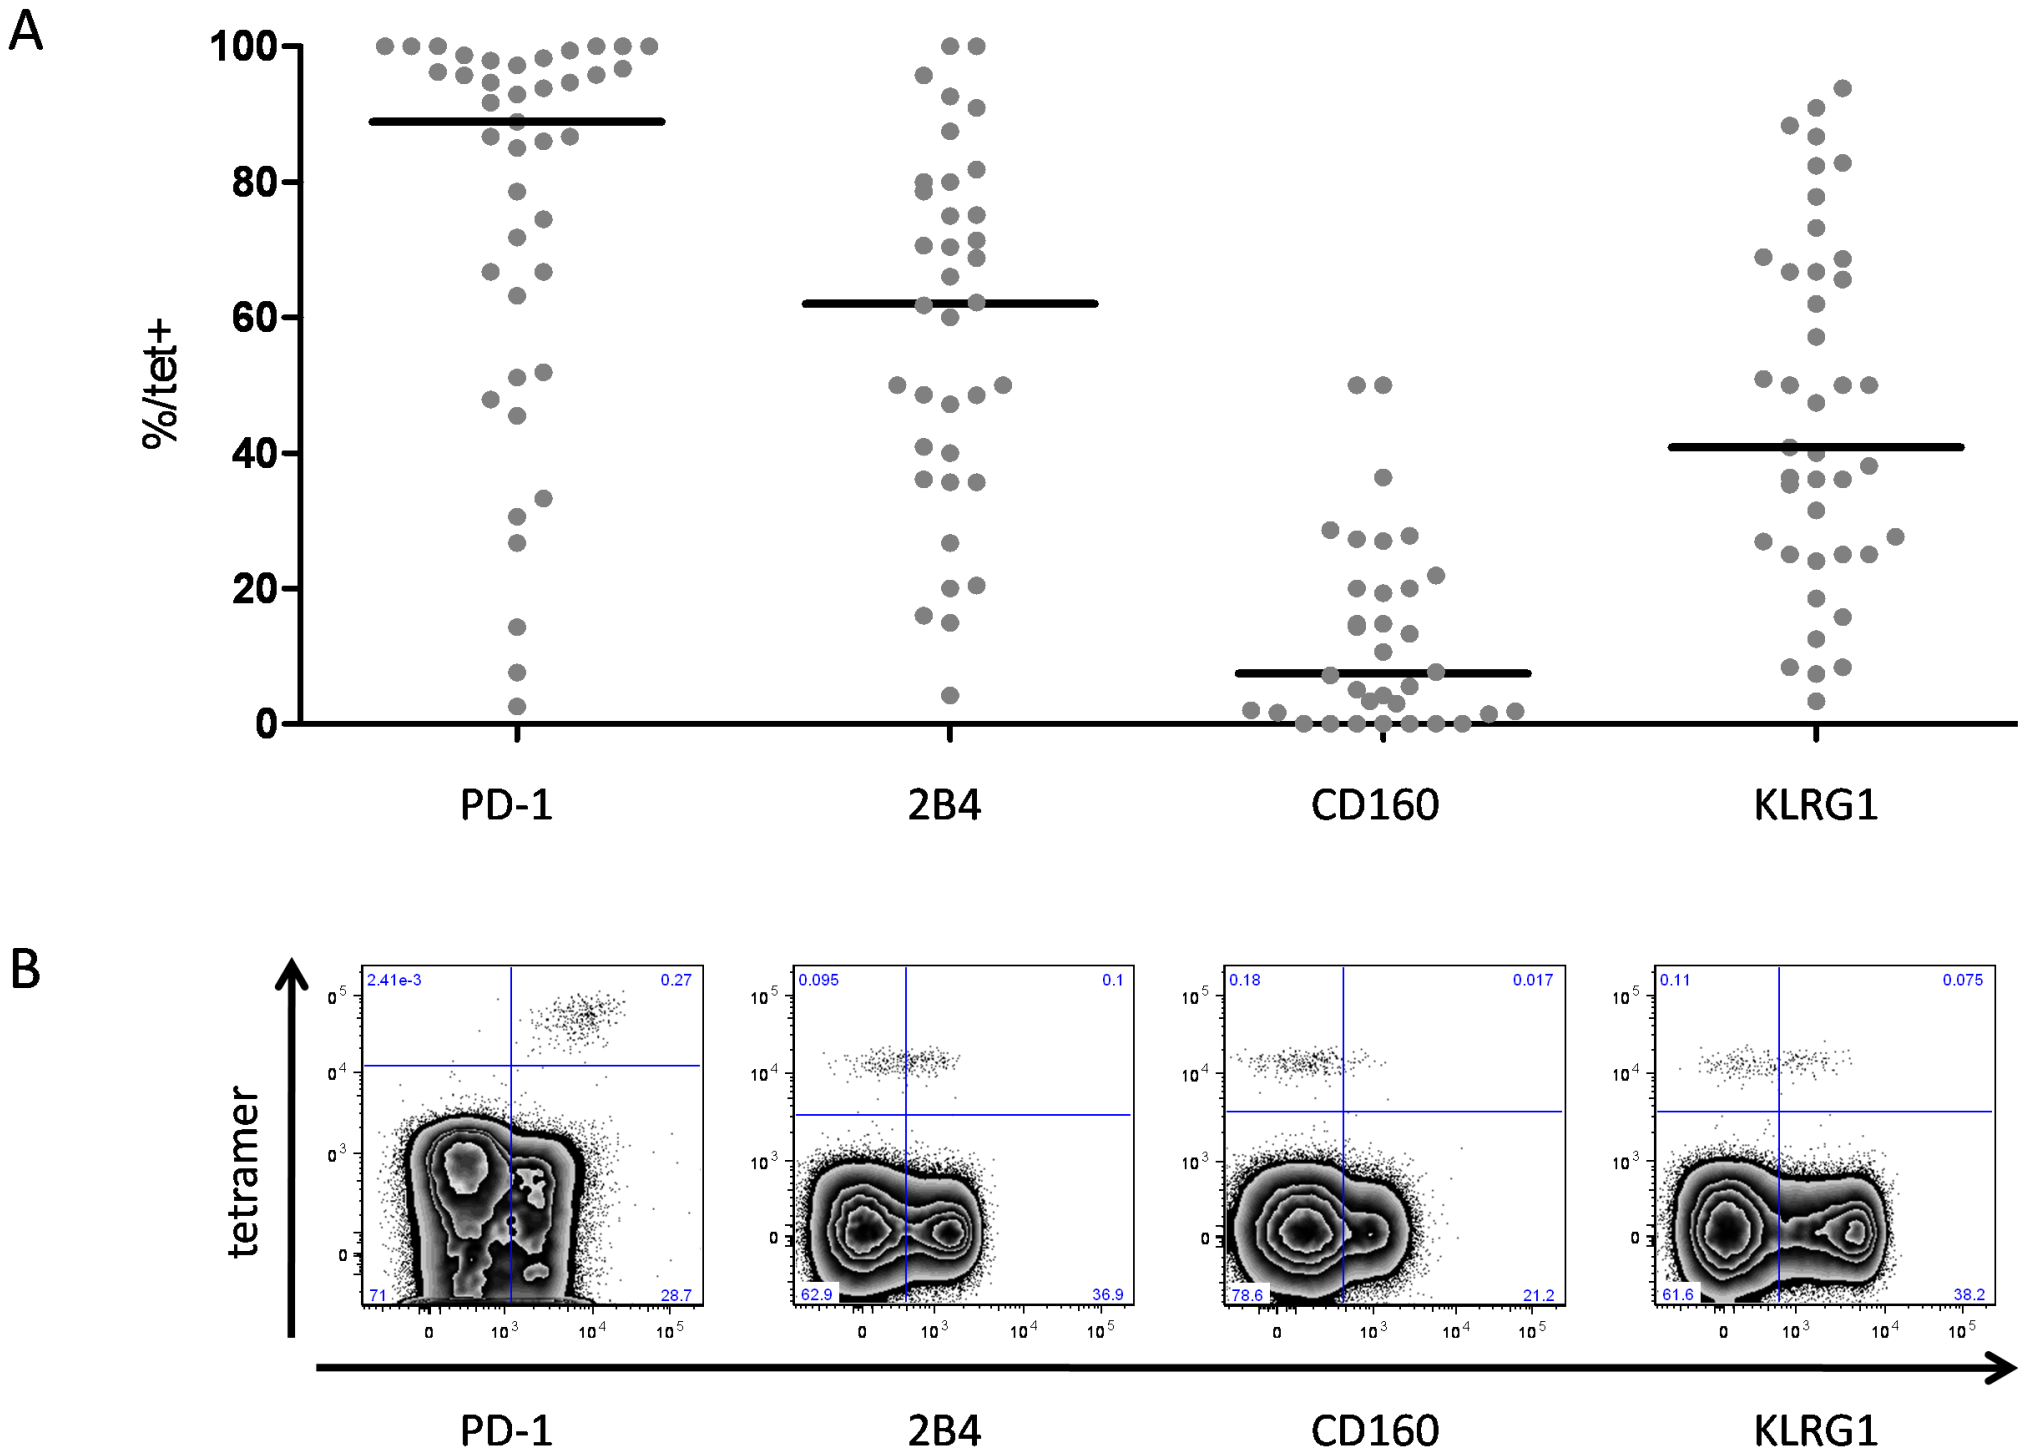 Expression of PD-1, 2B4, CD160 and KLRG1 on HCV-specific CD8+ T cells.